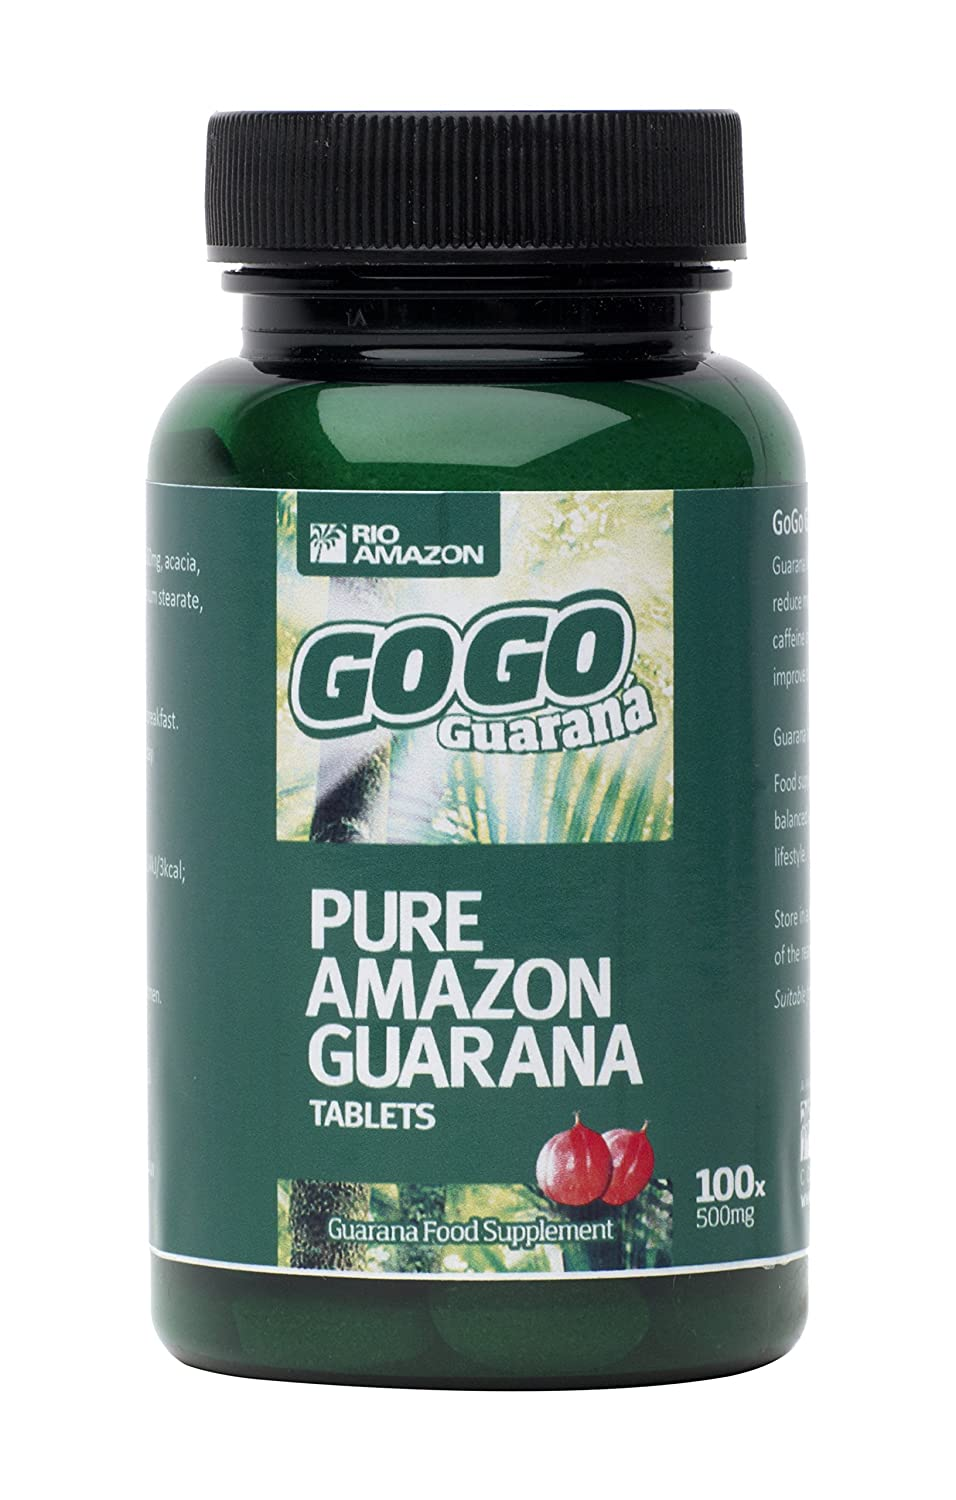 Rio Amazon GoGo Guarana 500mg, 100 vegipestañas: Amazon.es: Salud y cuidado personal